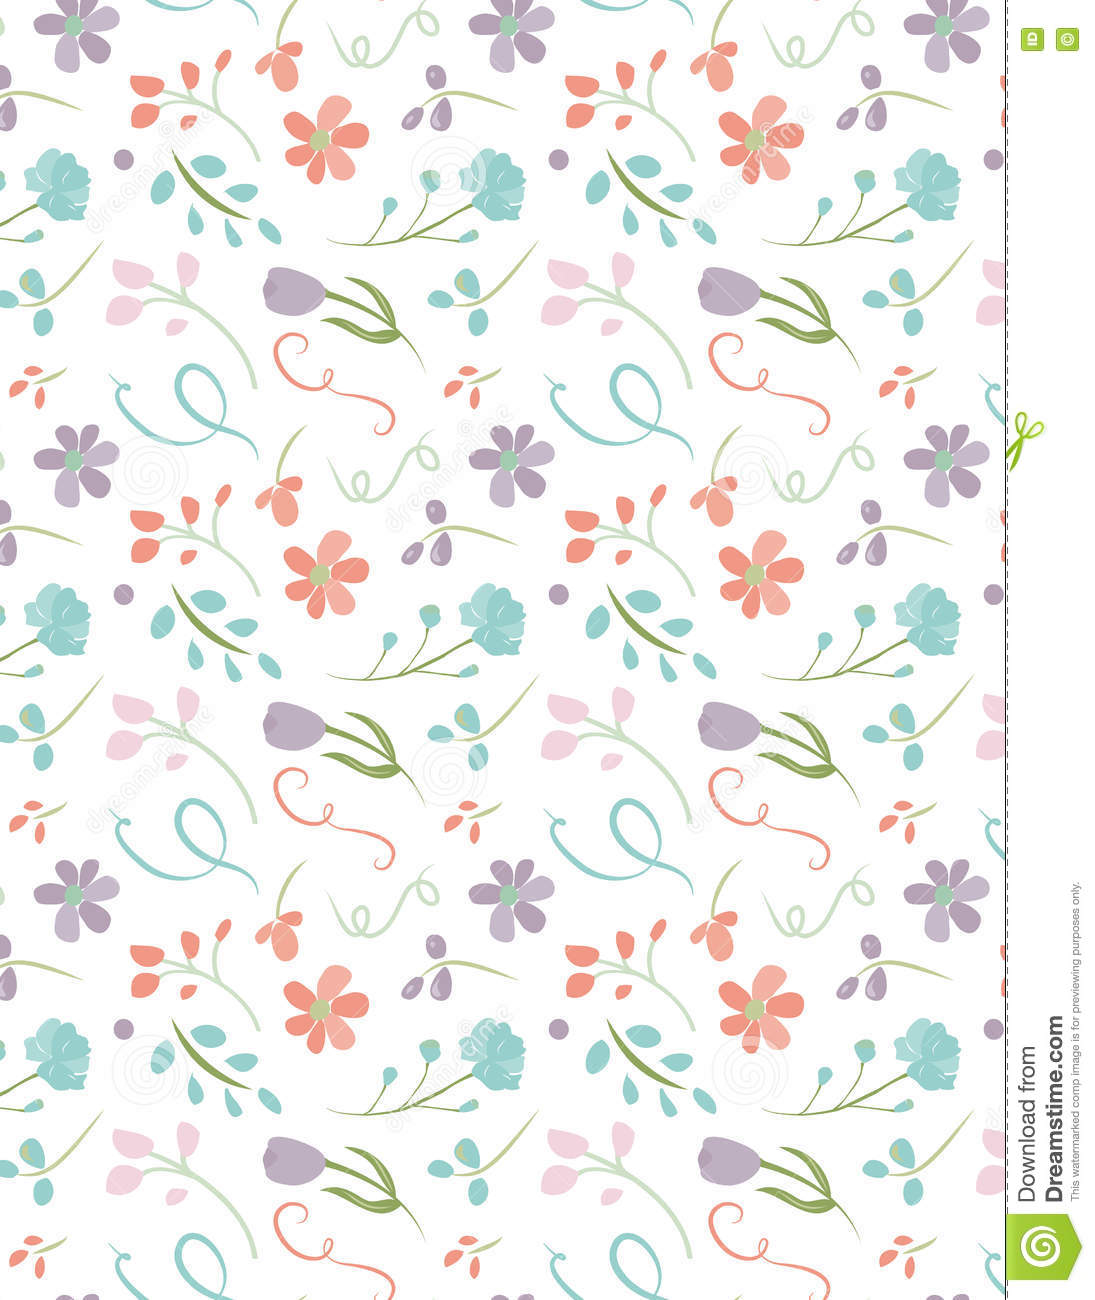 Floral repeating seamless pattern pretty flower background stock floral repeating seamless pattern pretty flower background mightylinksfo